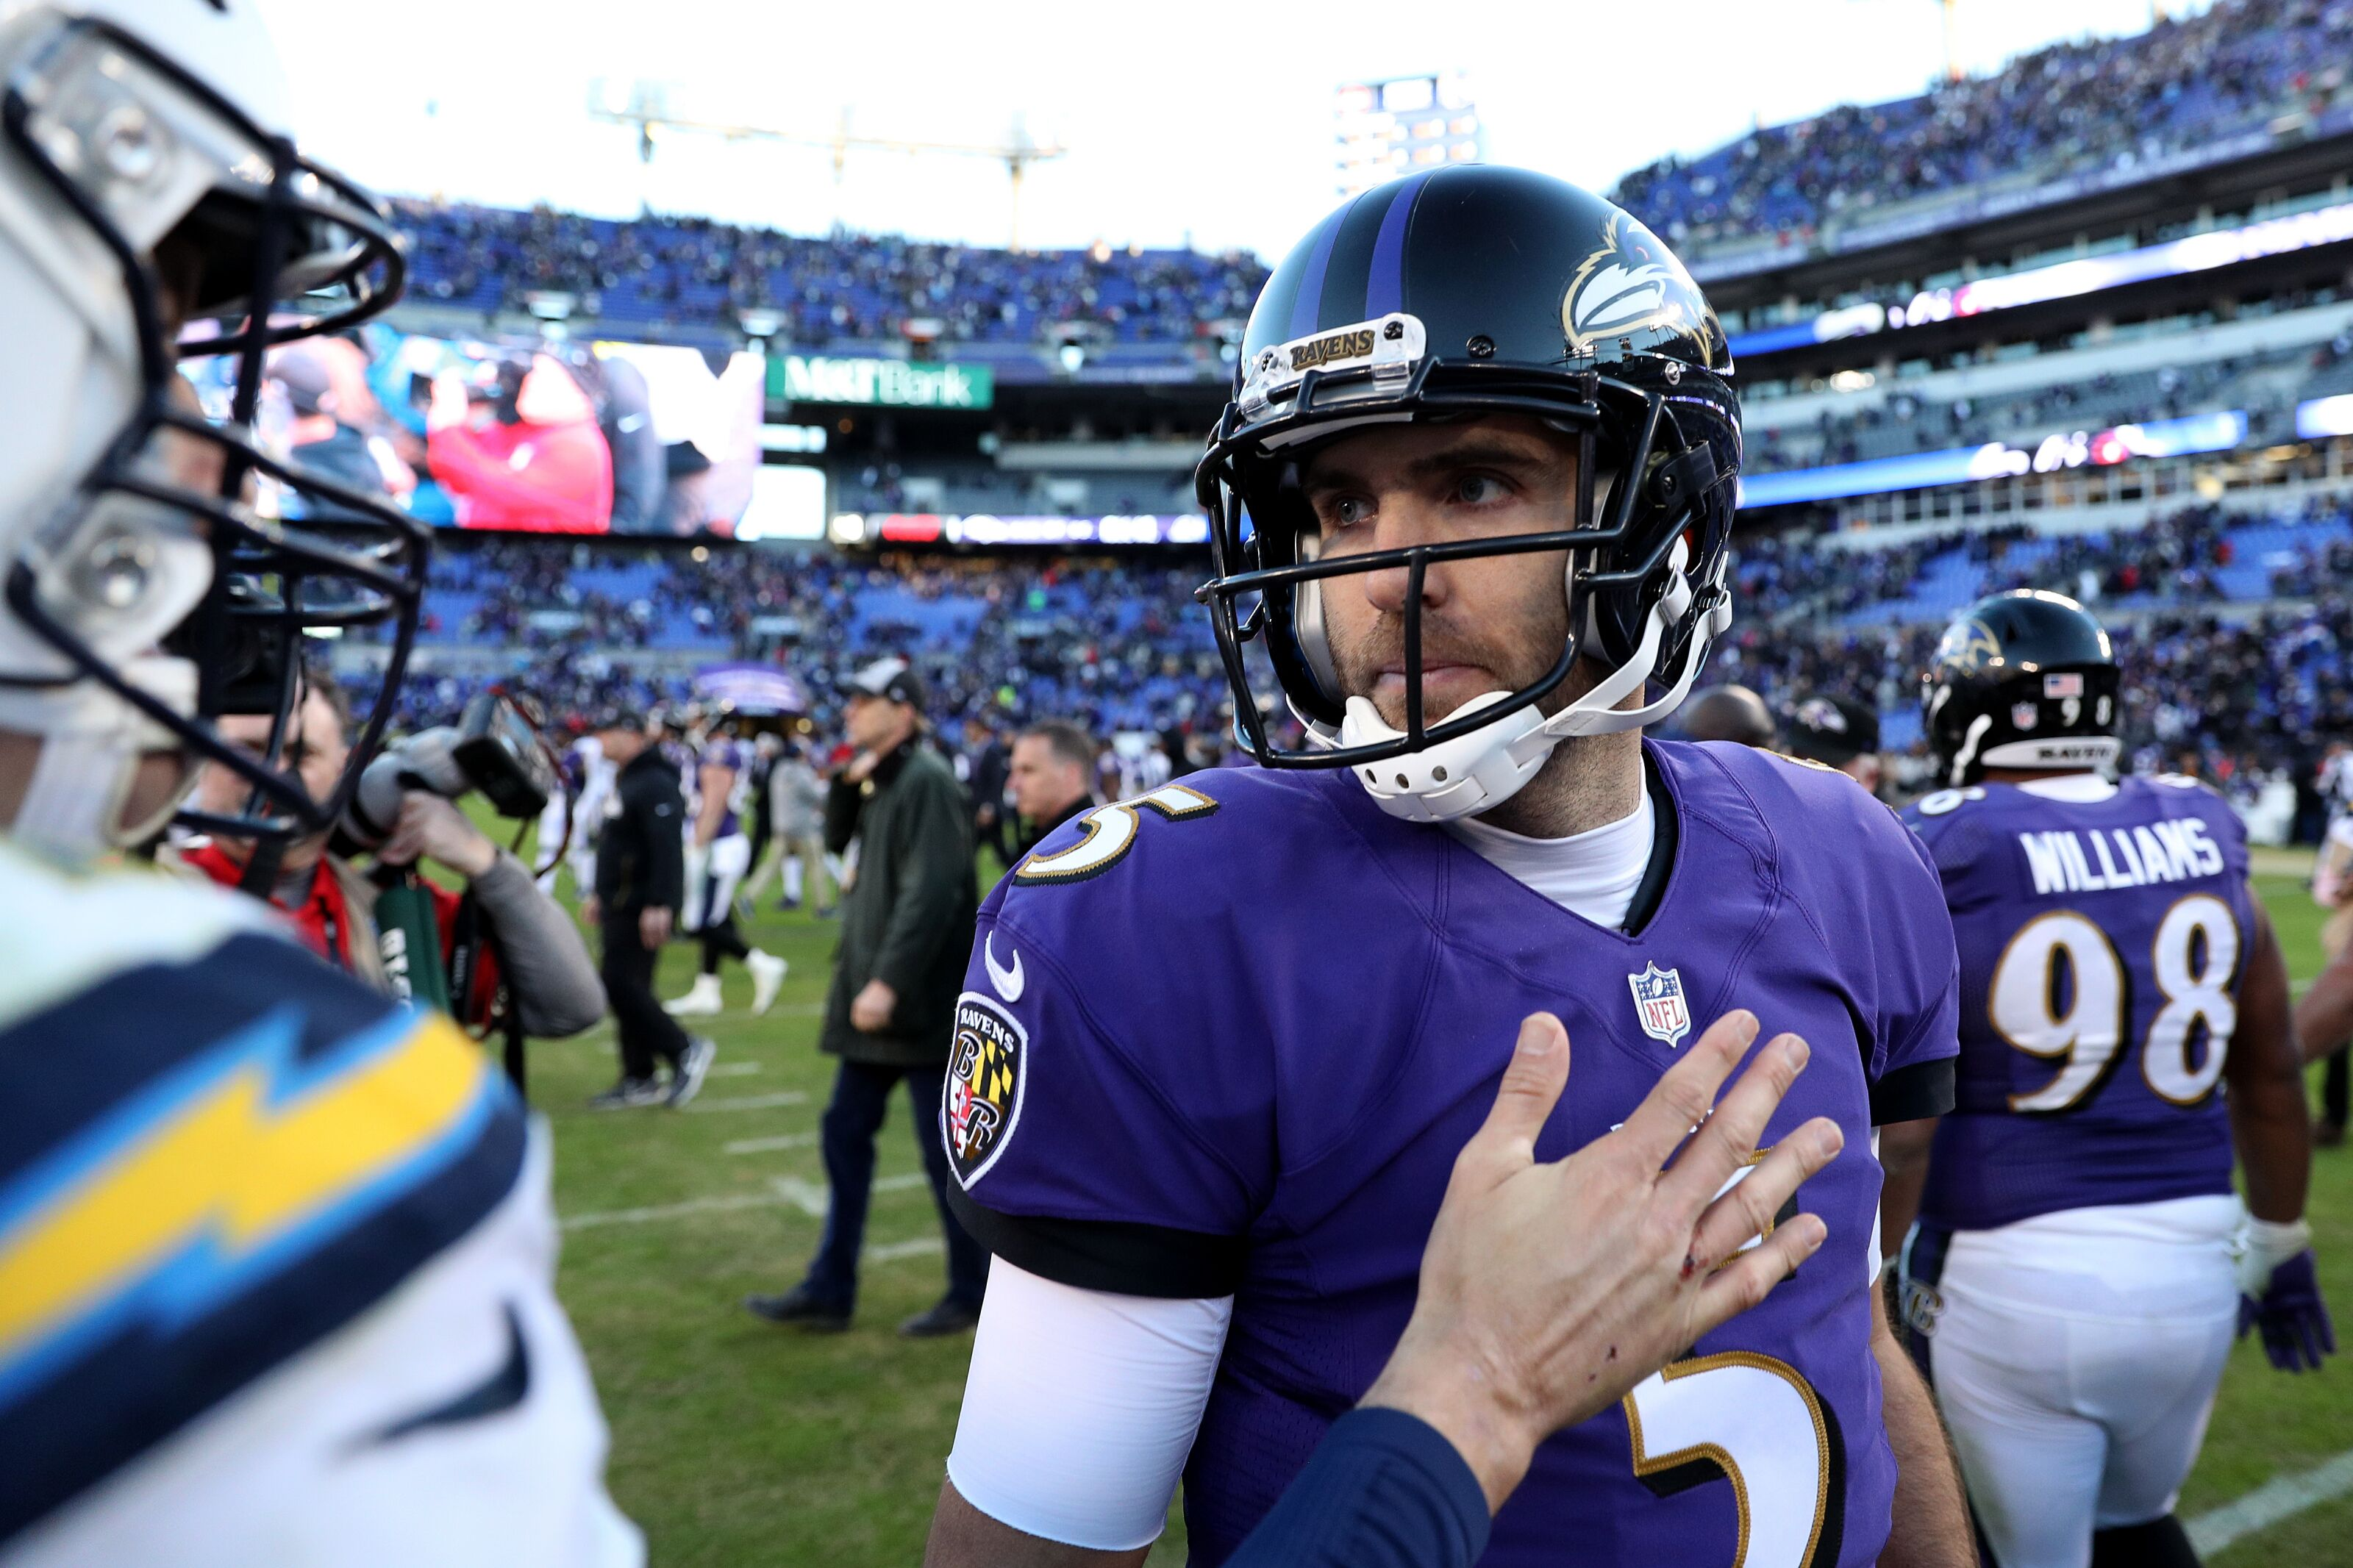 Denver Broncos: Joe Flacco was nearly traded to another team